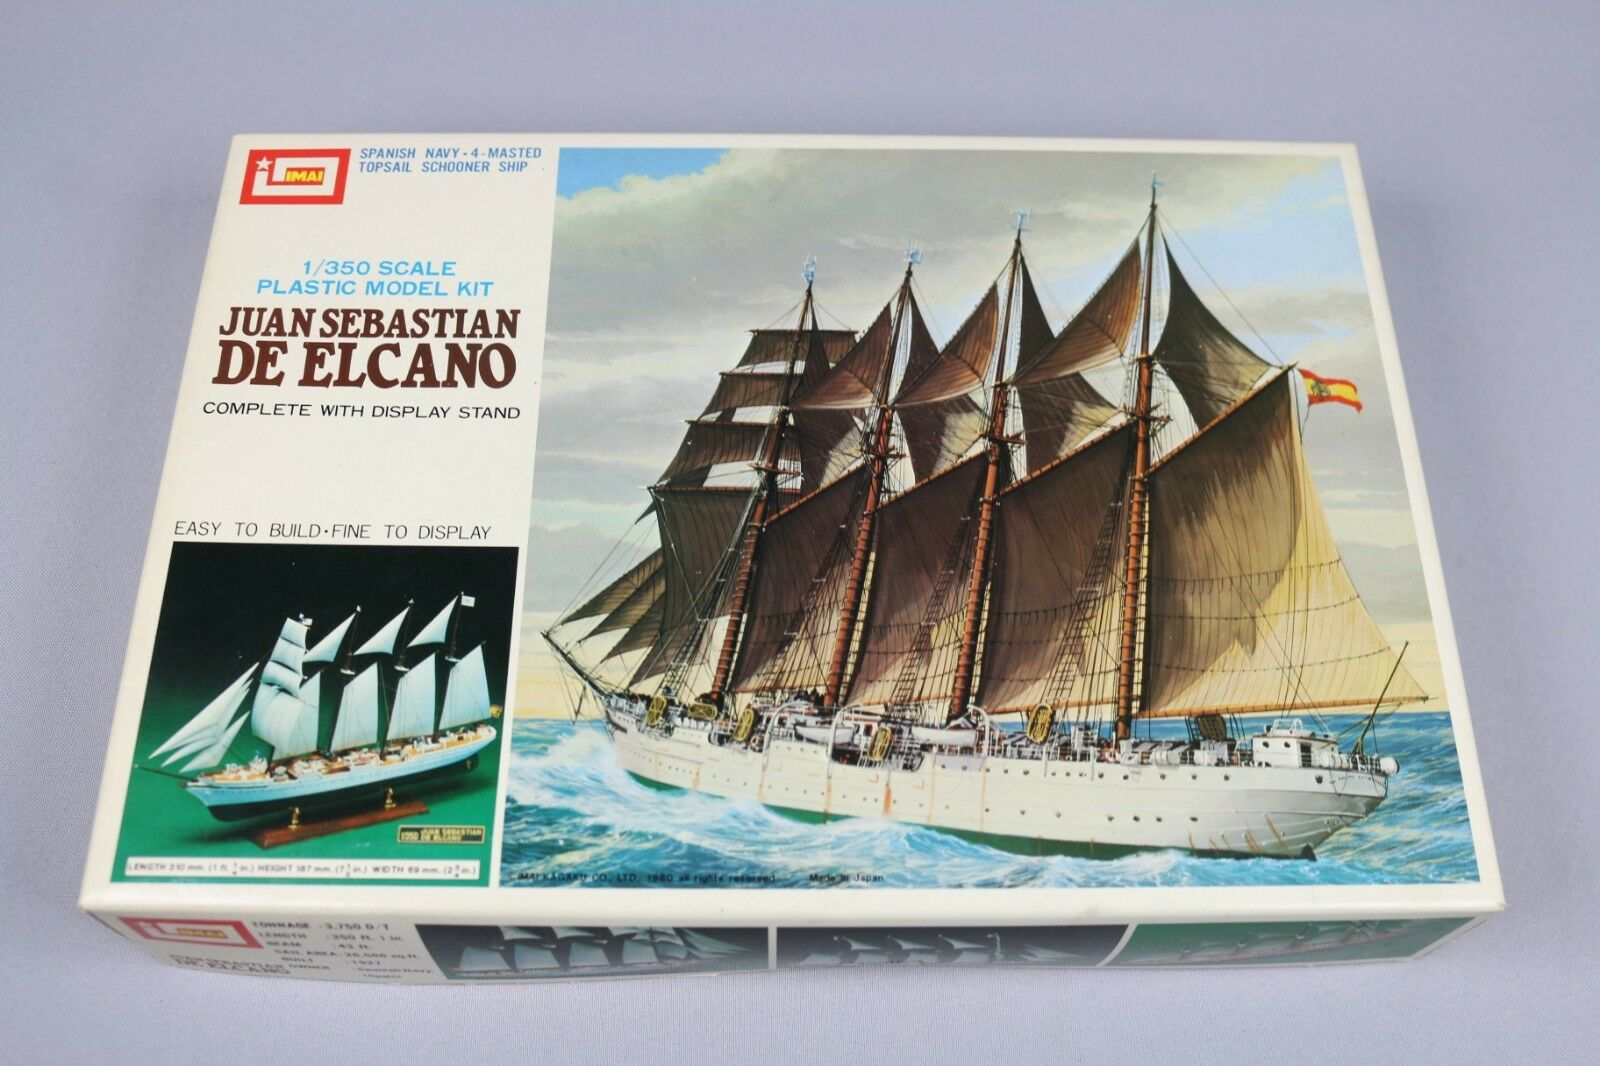 Zf935 Imai 1 350 Model Boat B-937 Juan Sebastian of Elcano Spanish Navy